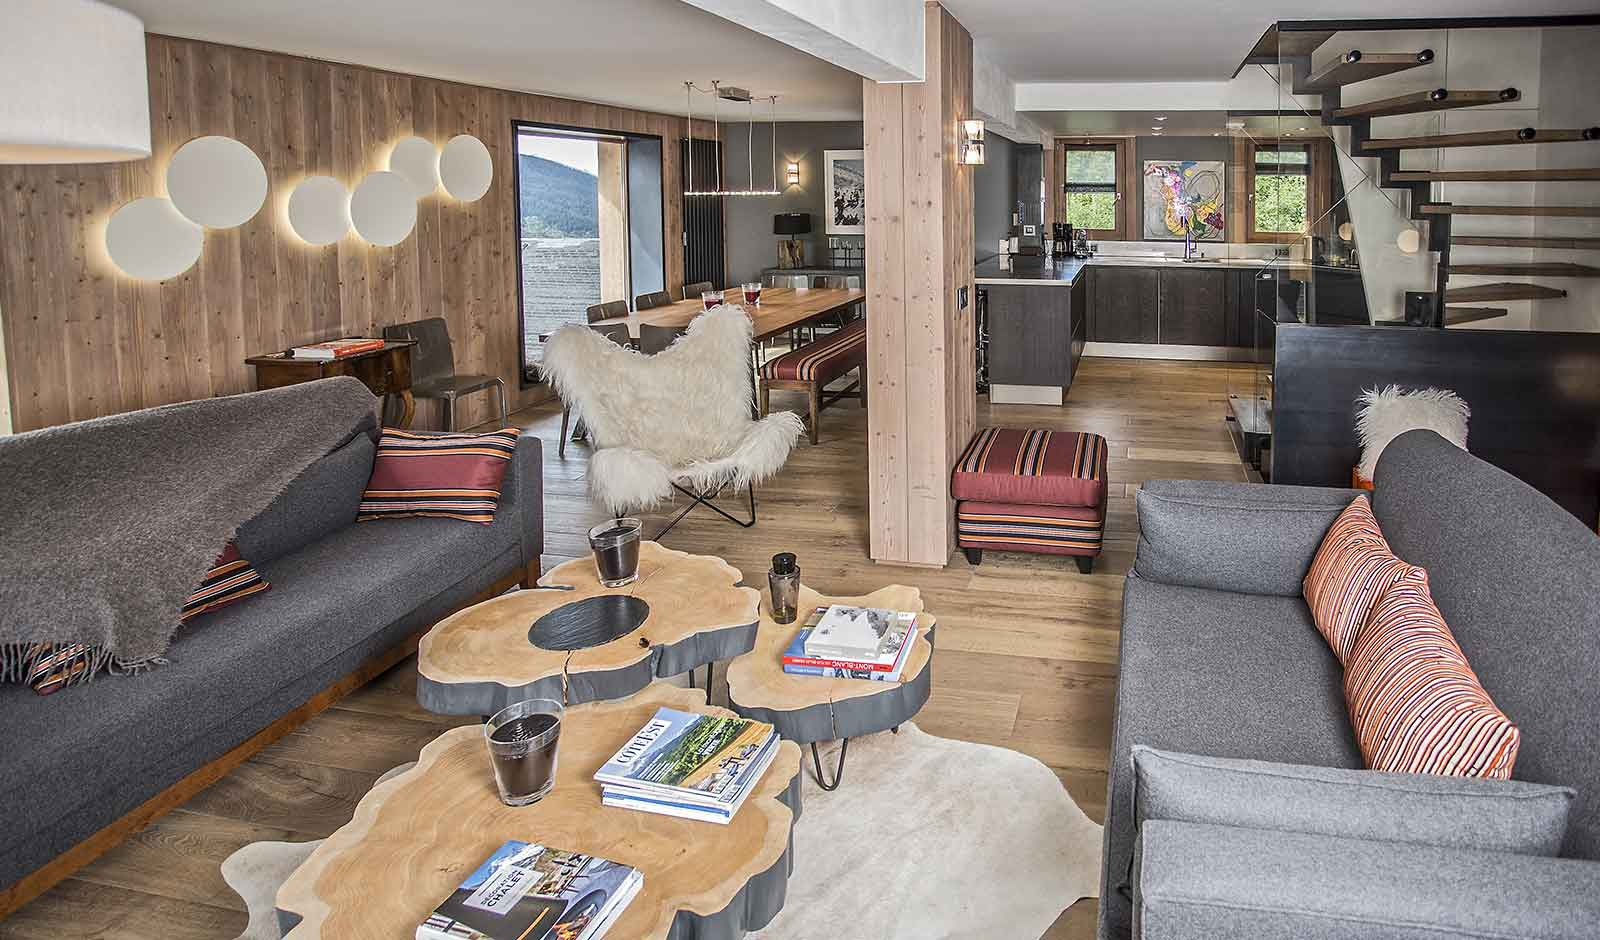 chalet-bachal-3-atelier-crea-and-co-architecte-design-project-manager-meribel-savoie